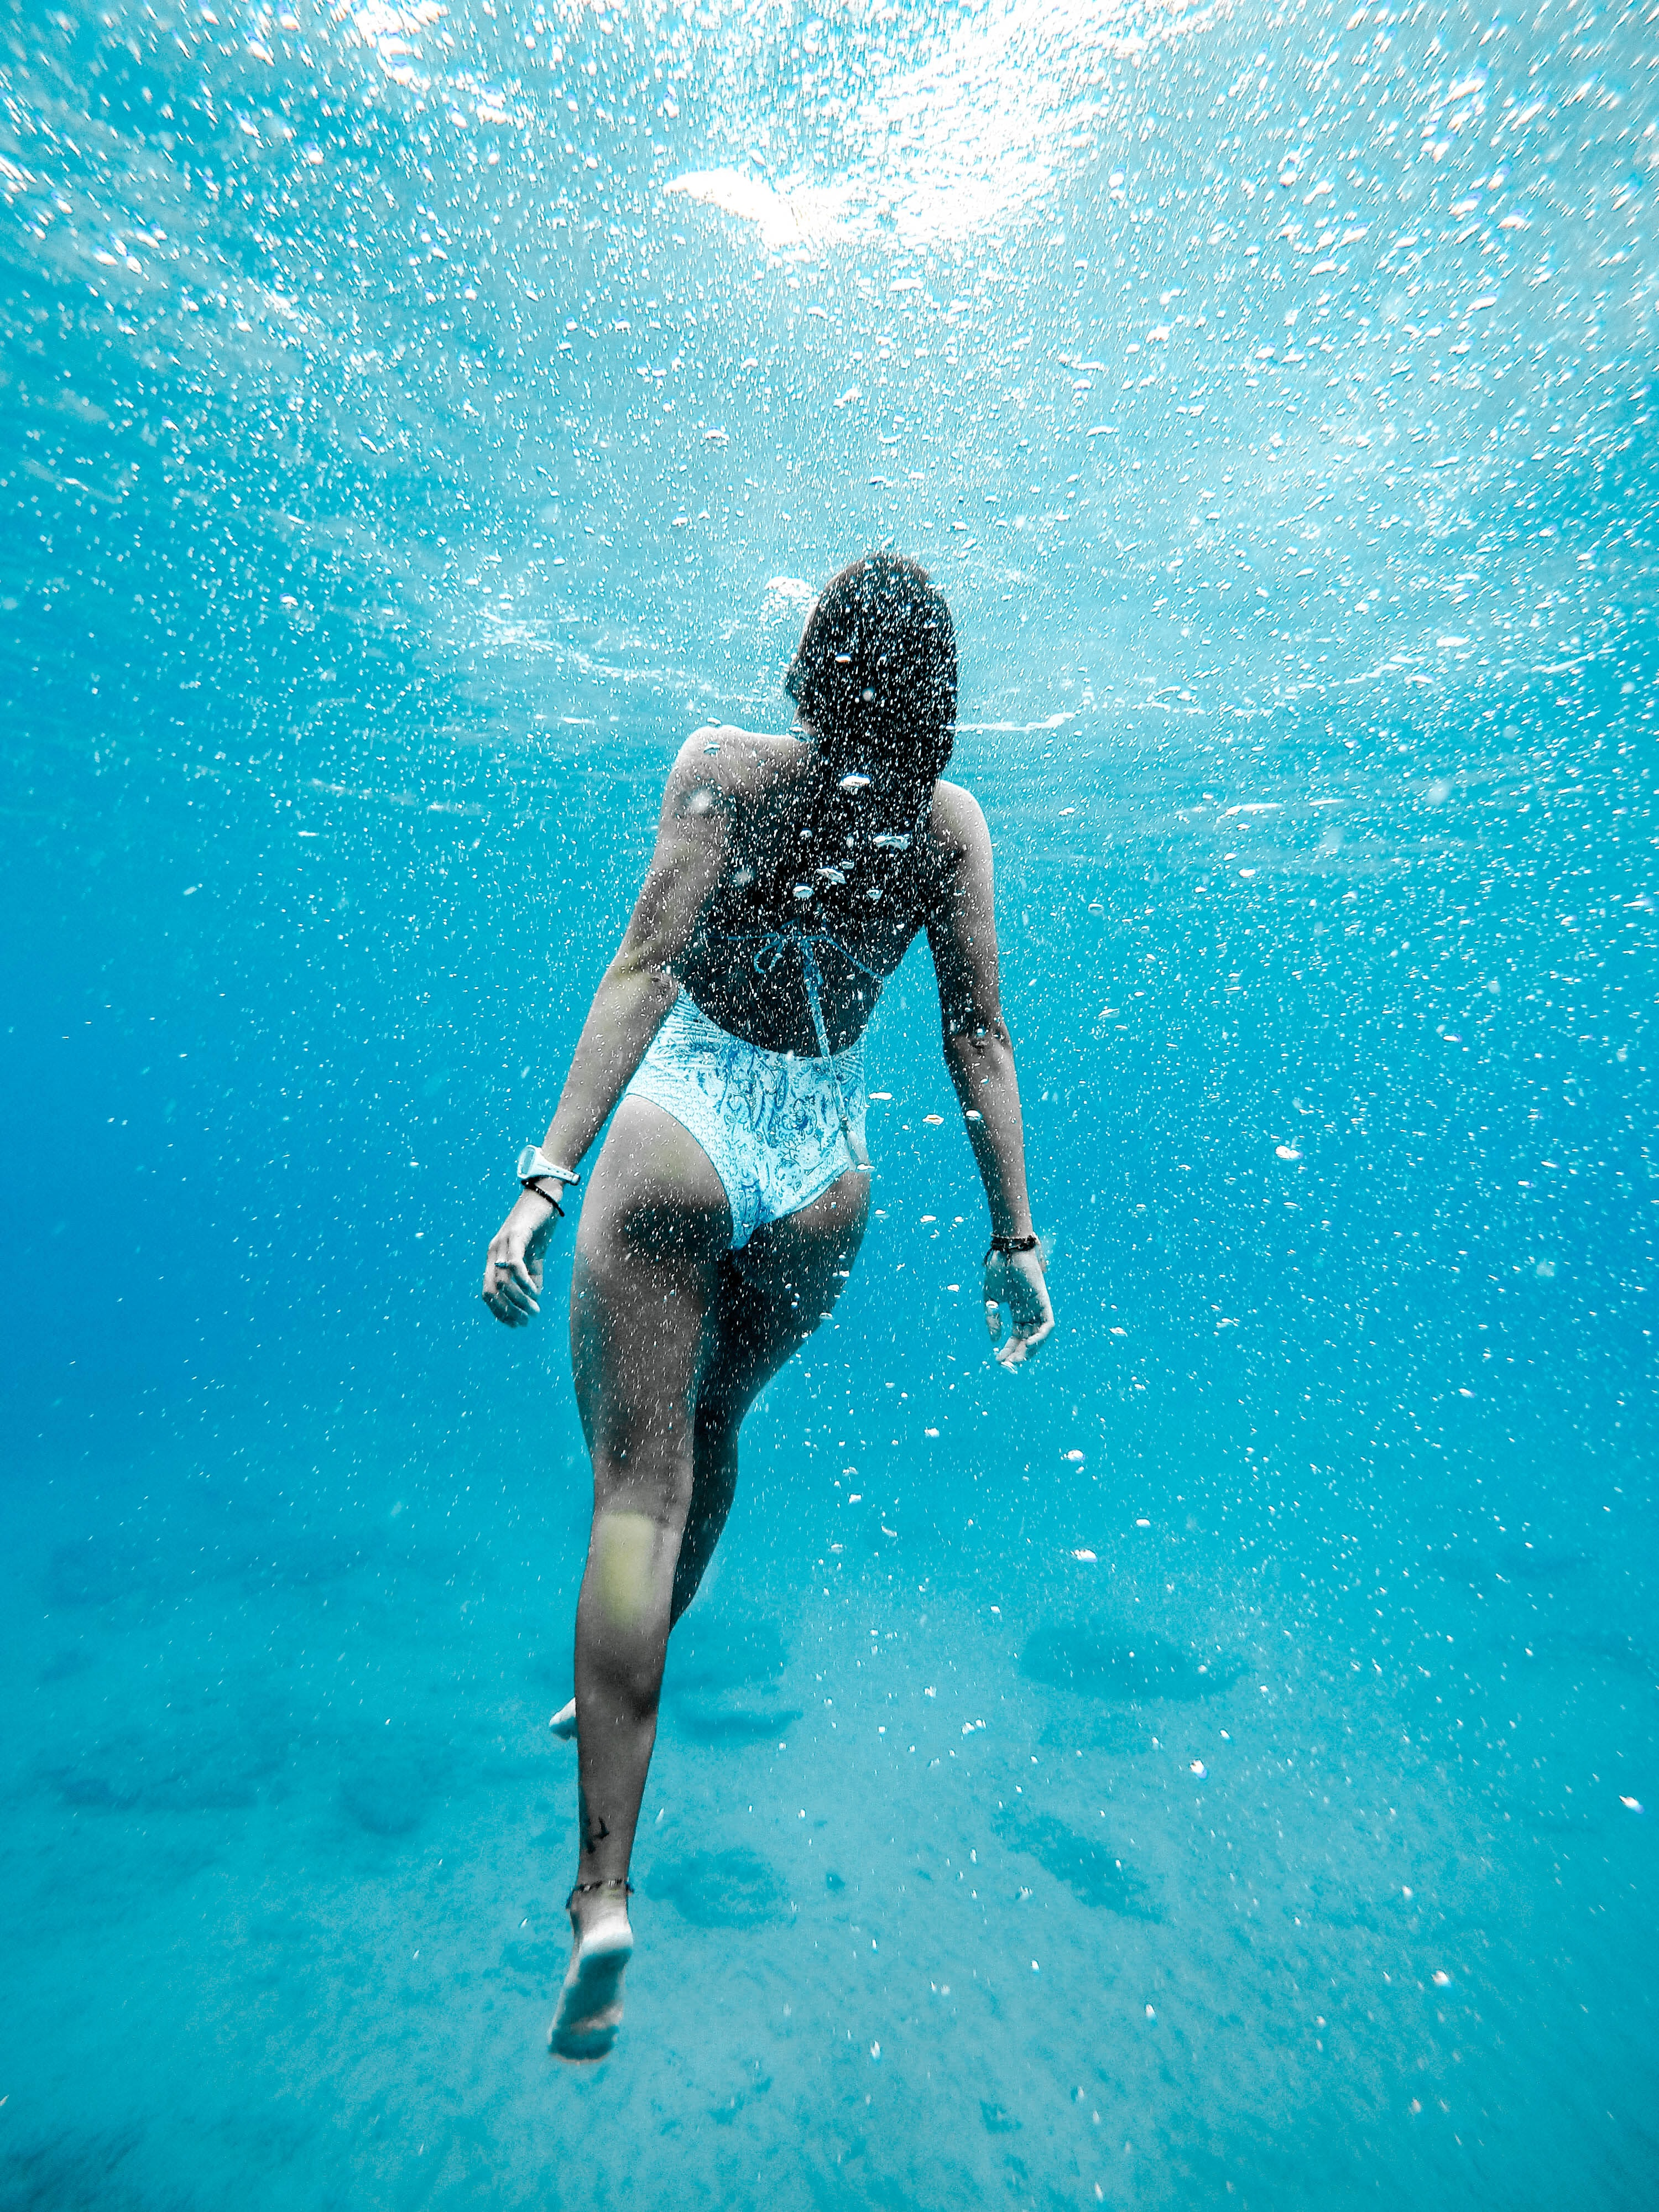 A woman in a bikini swimming underwater